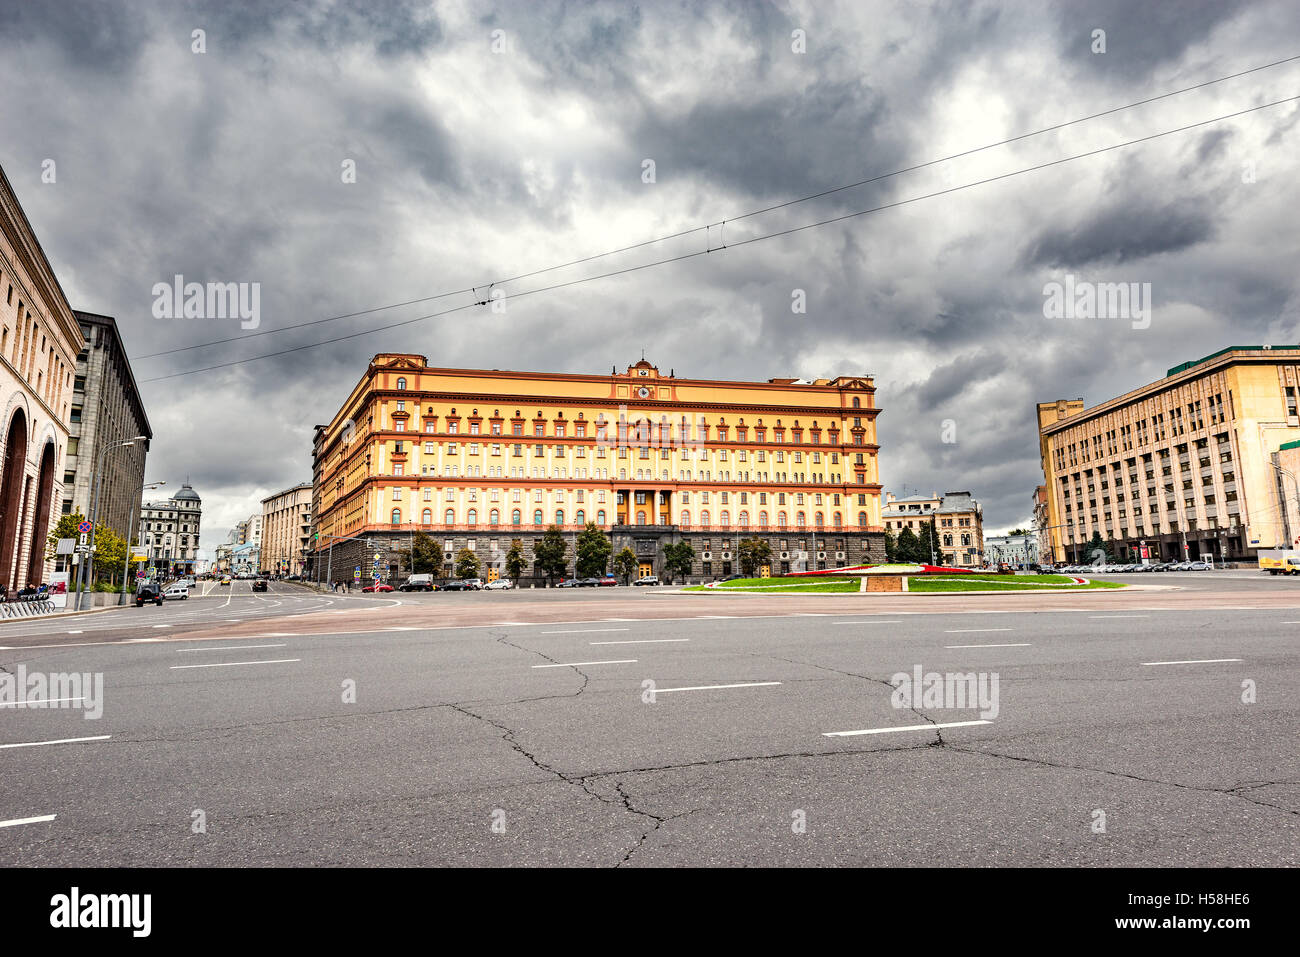 Lubyanka square by FSB and KGB headquarters in the historical center of Moscow, Russia - Stock Image